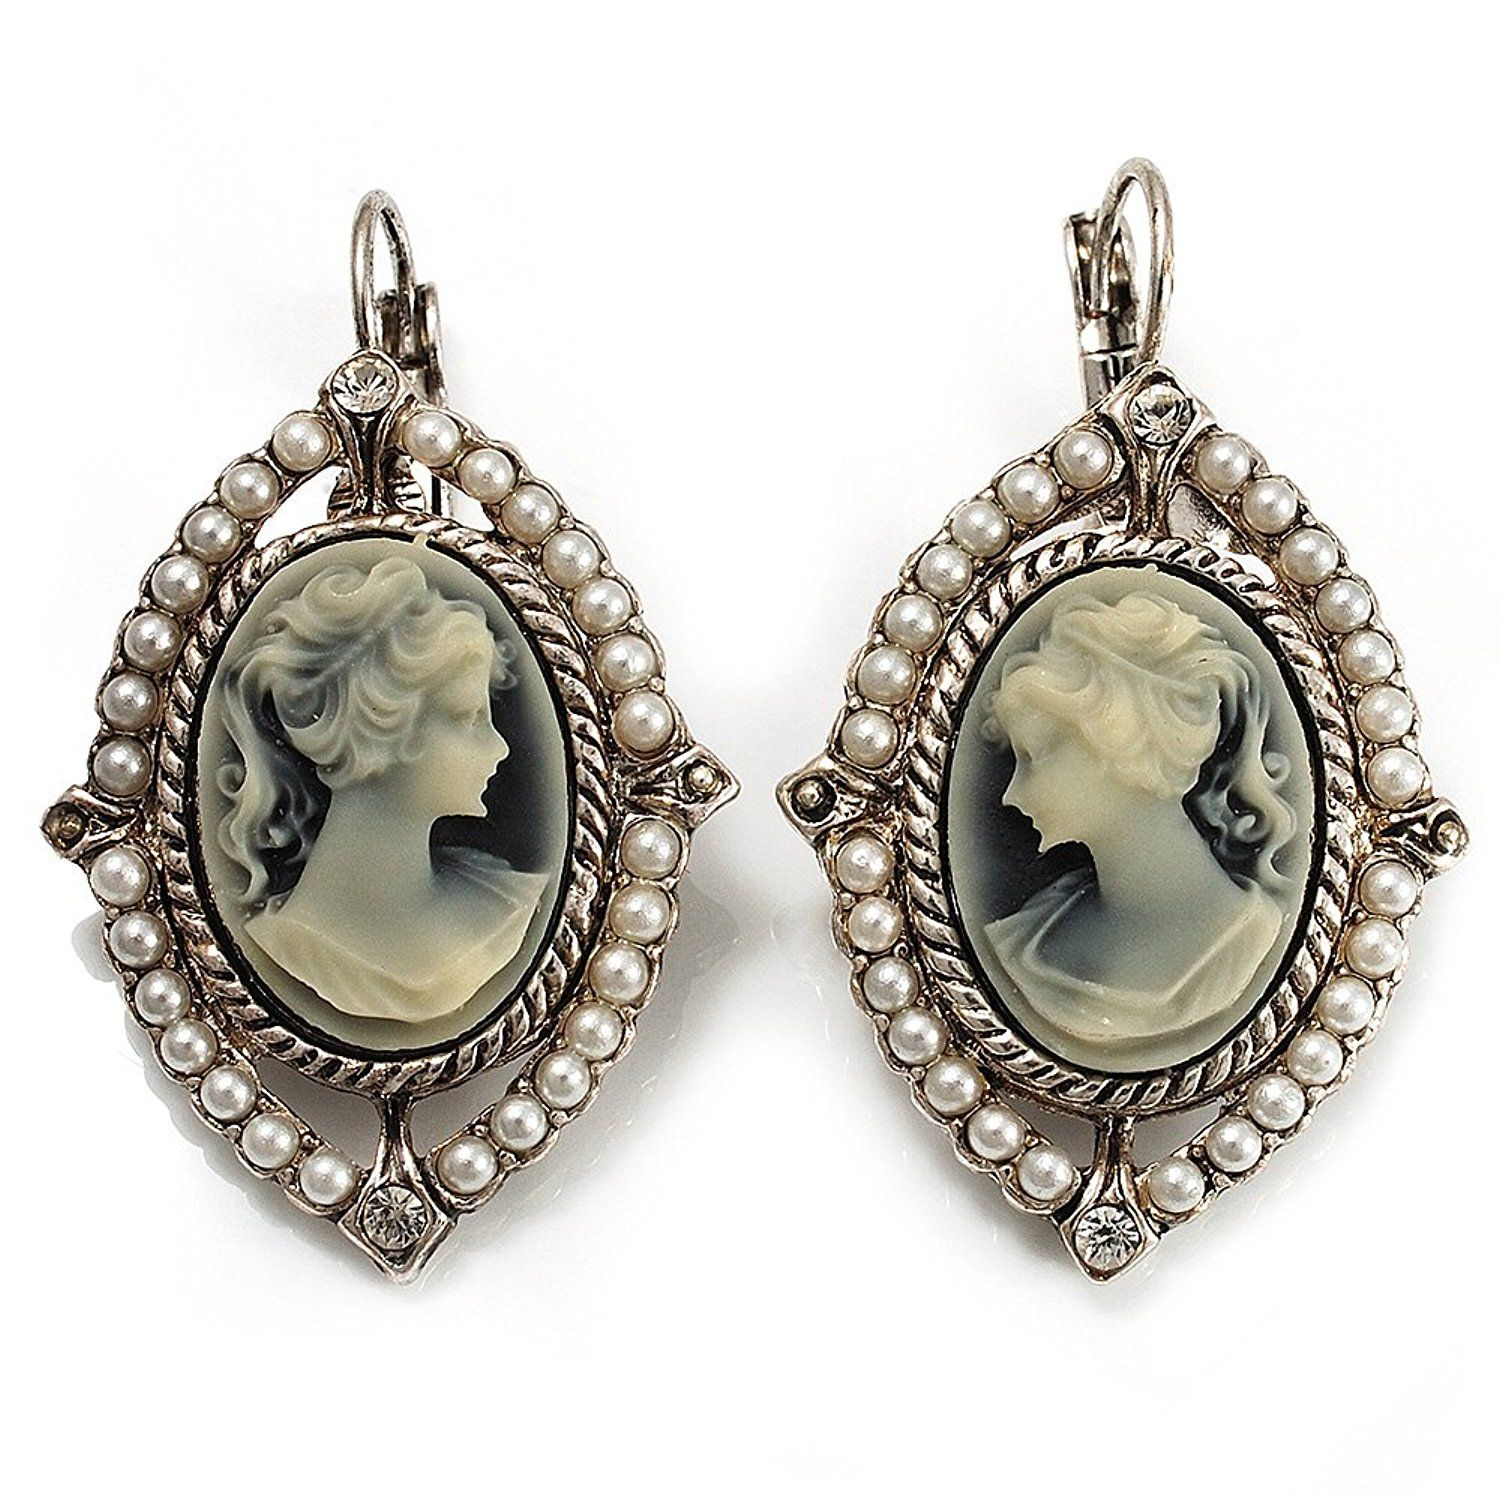 Vintage Cameo Imitation Pearl Drop Earrings (Burn Silver) PatvN